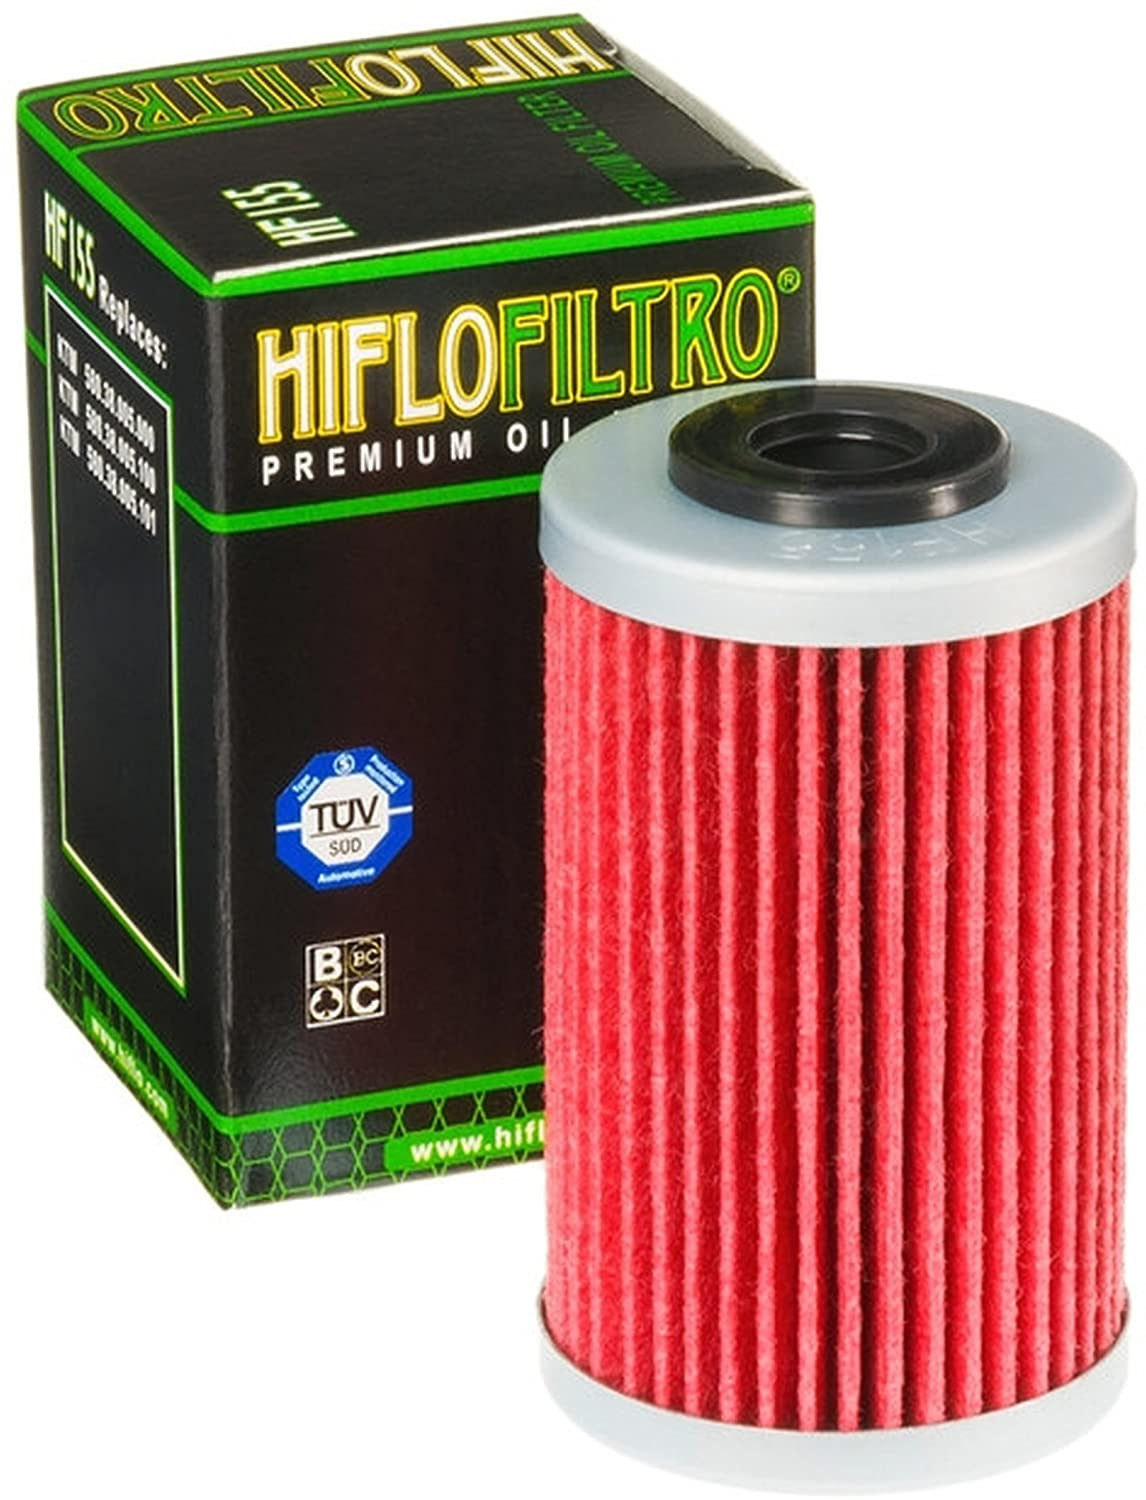 3x /Ölfilter Beta RR 525 Enduro Racing 05-09 Hiflo HF155